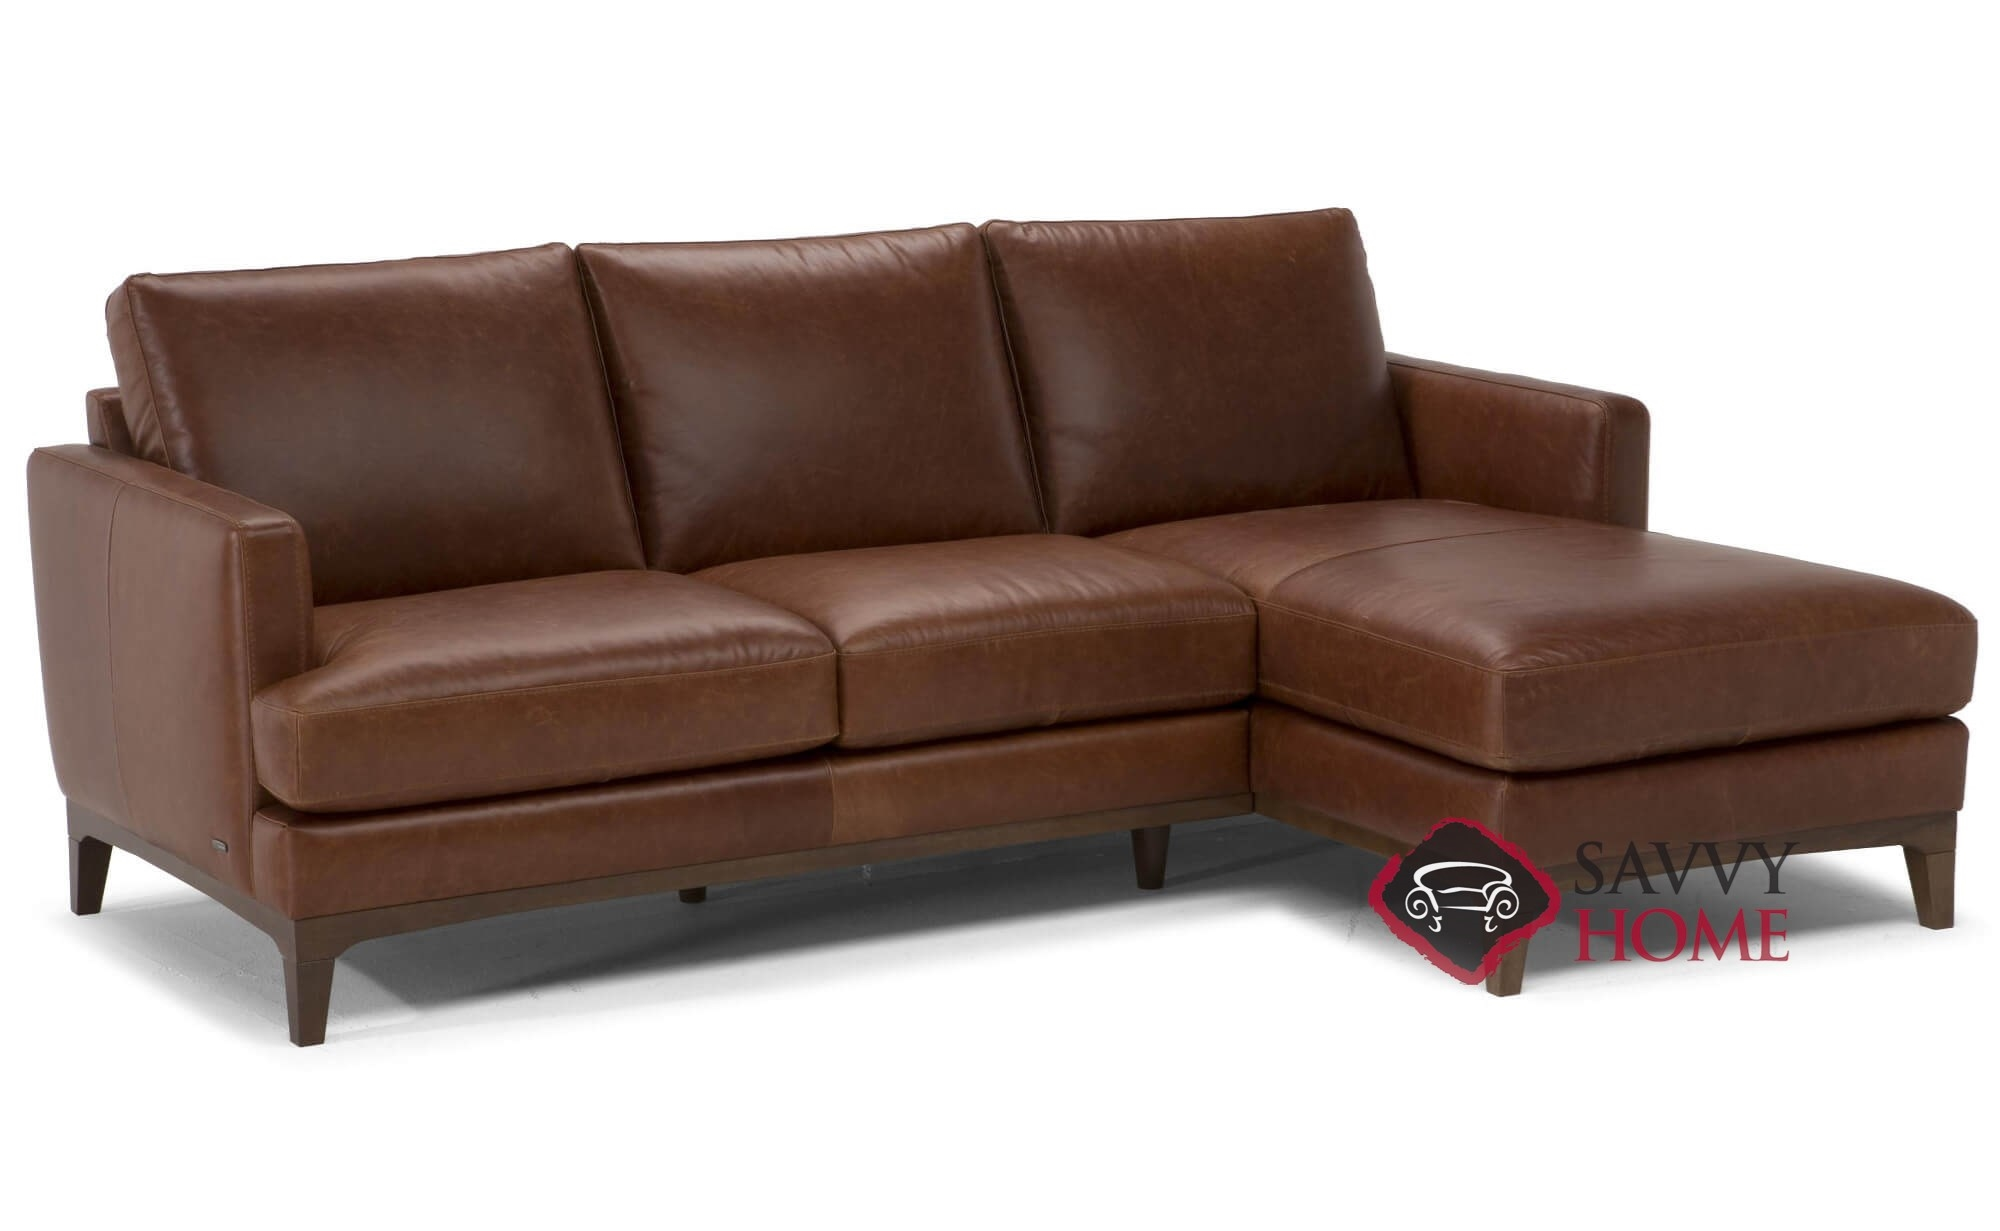 Incredible Bevera Leather Compact Chaise Sectional By Natuzzi Editions B970 016 017 047 049 Creativecarmelina Interior Chair Design Creativecarmelinacom